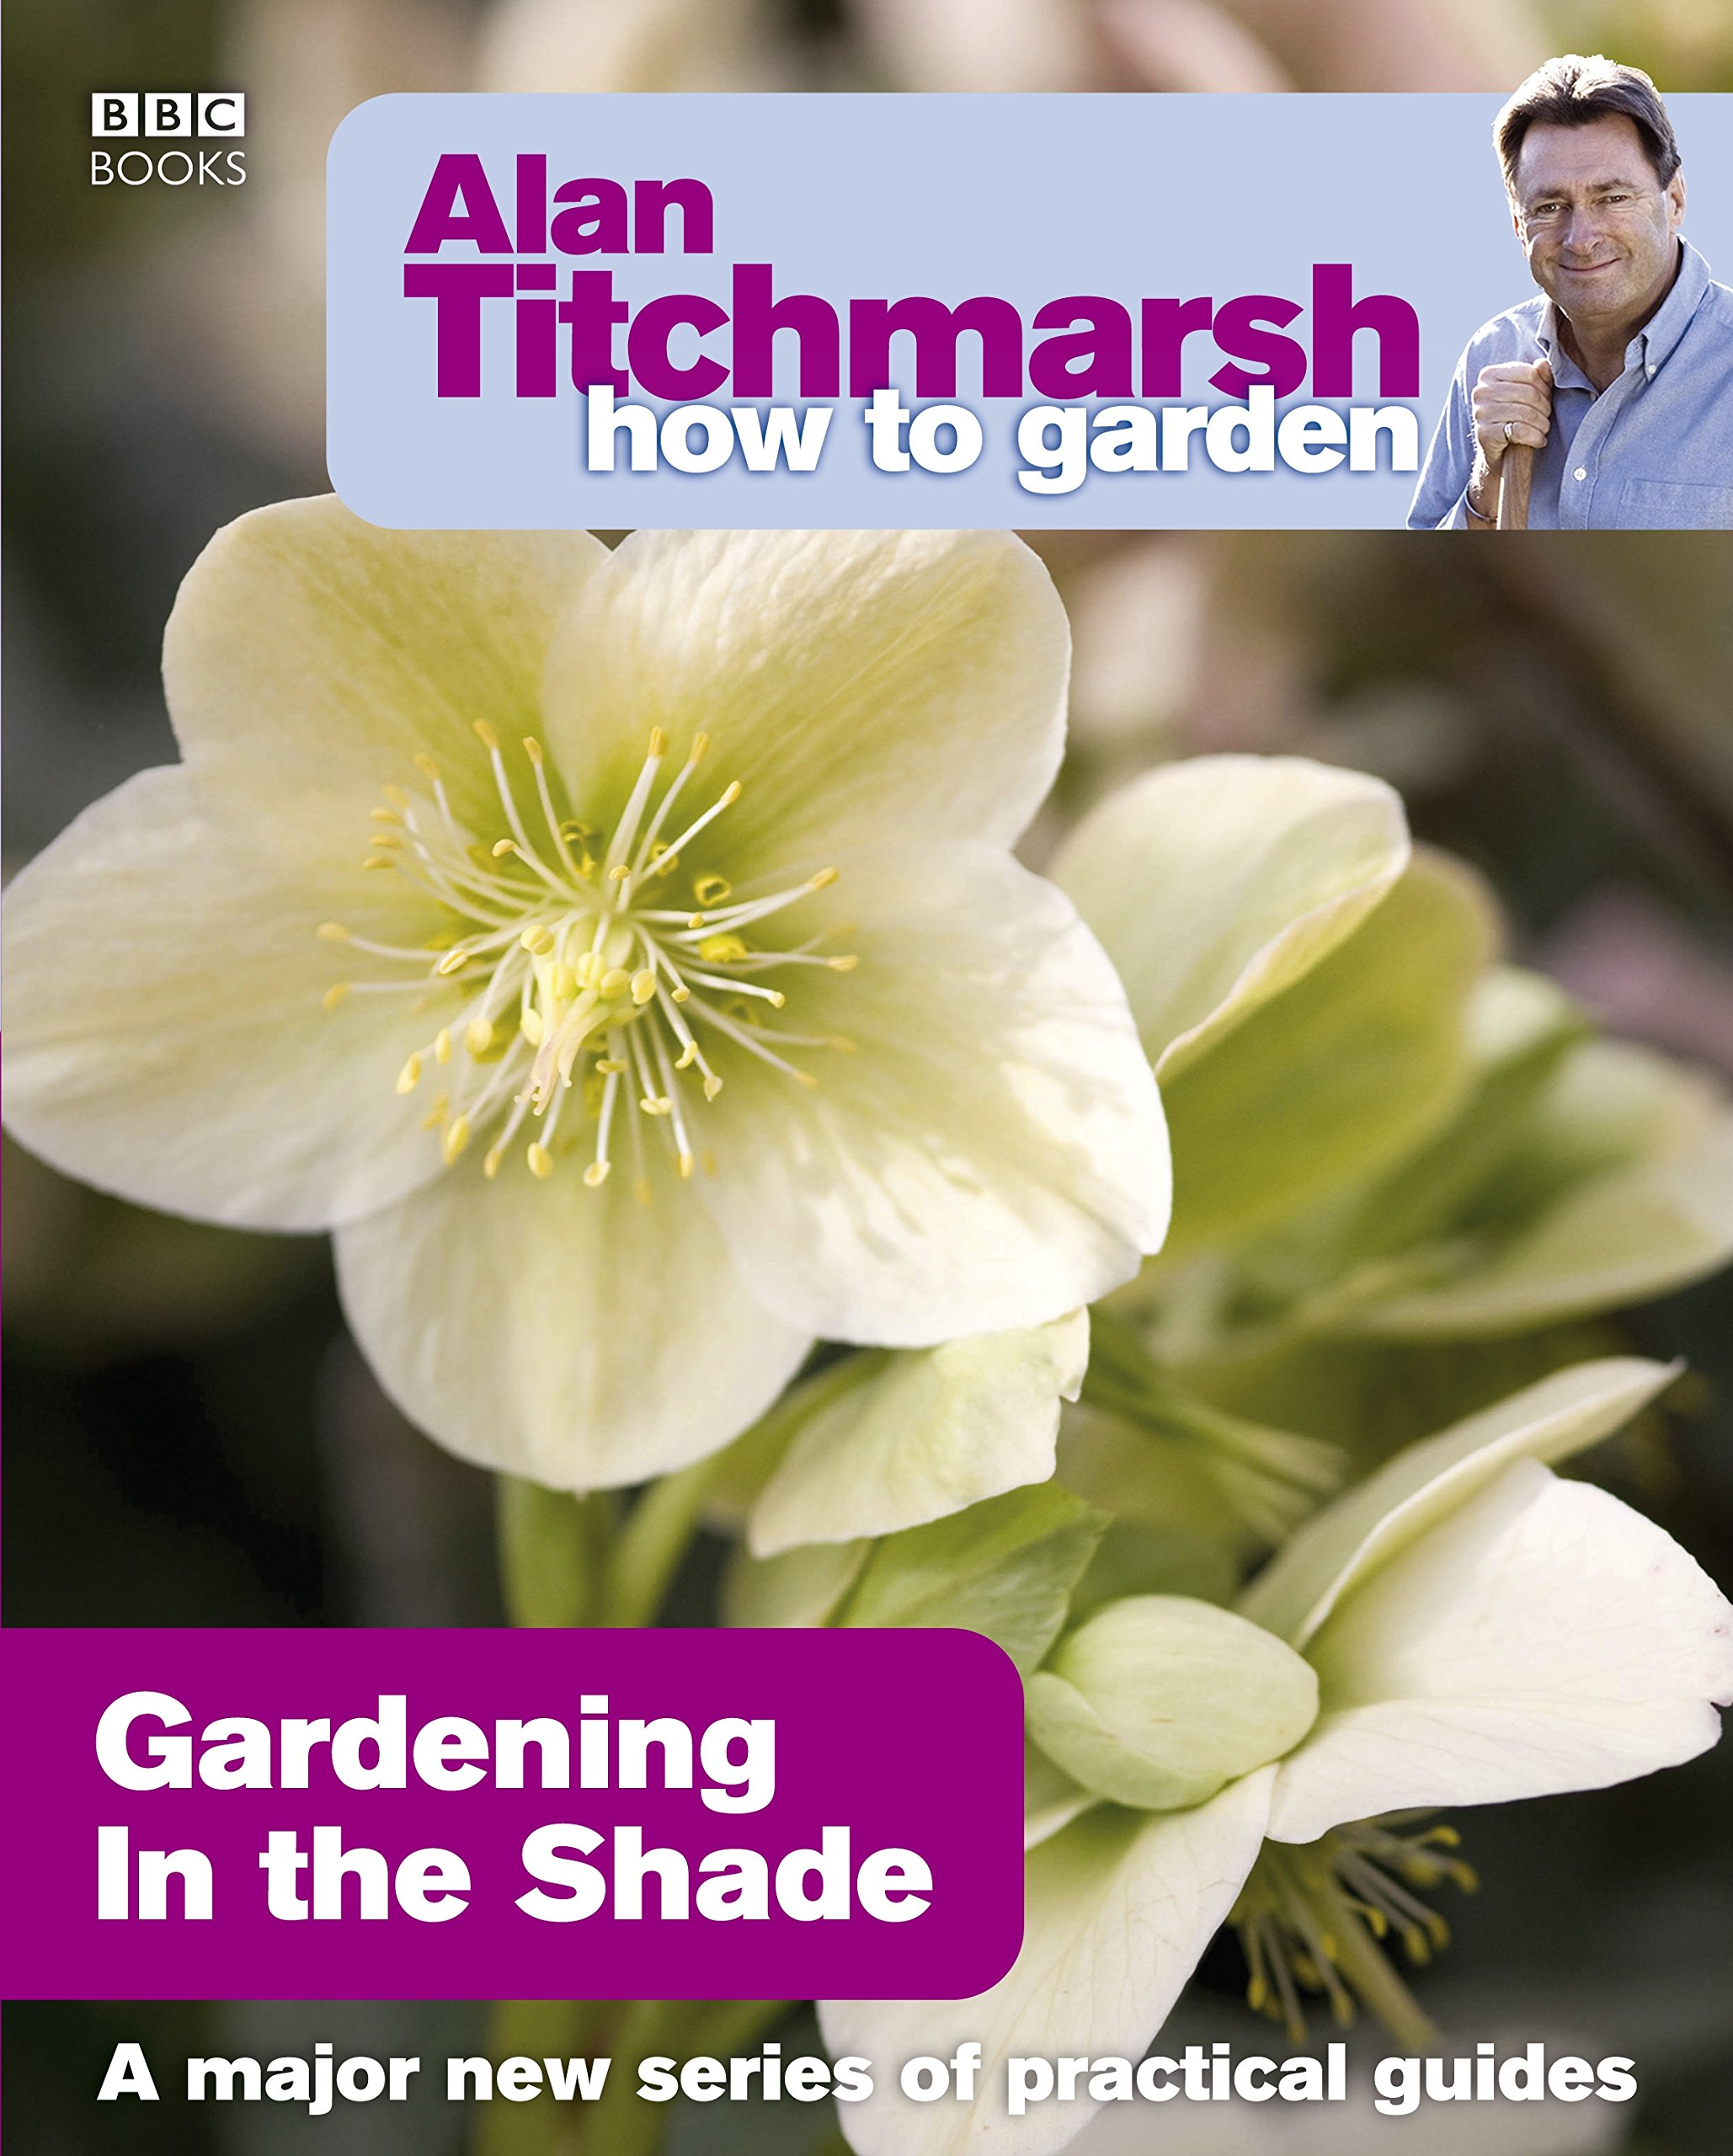 Alan Titchmarsh How to Garden: Gardening in the Shade: Amazon.es: Titchmarsh, Alan: Libros en idiomas extranjeros